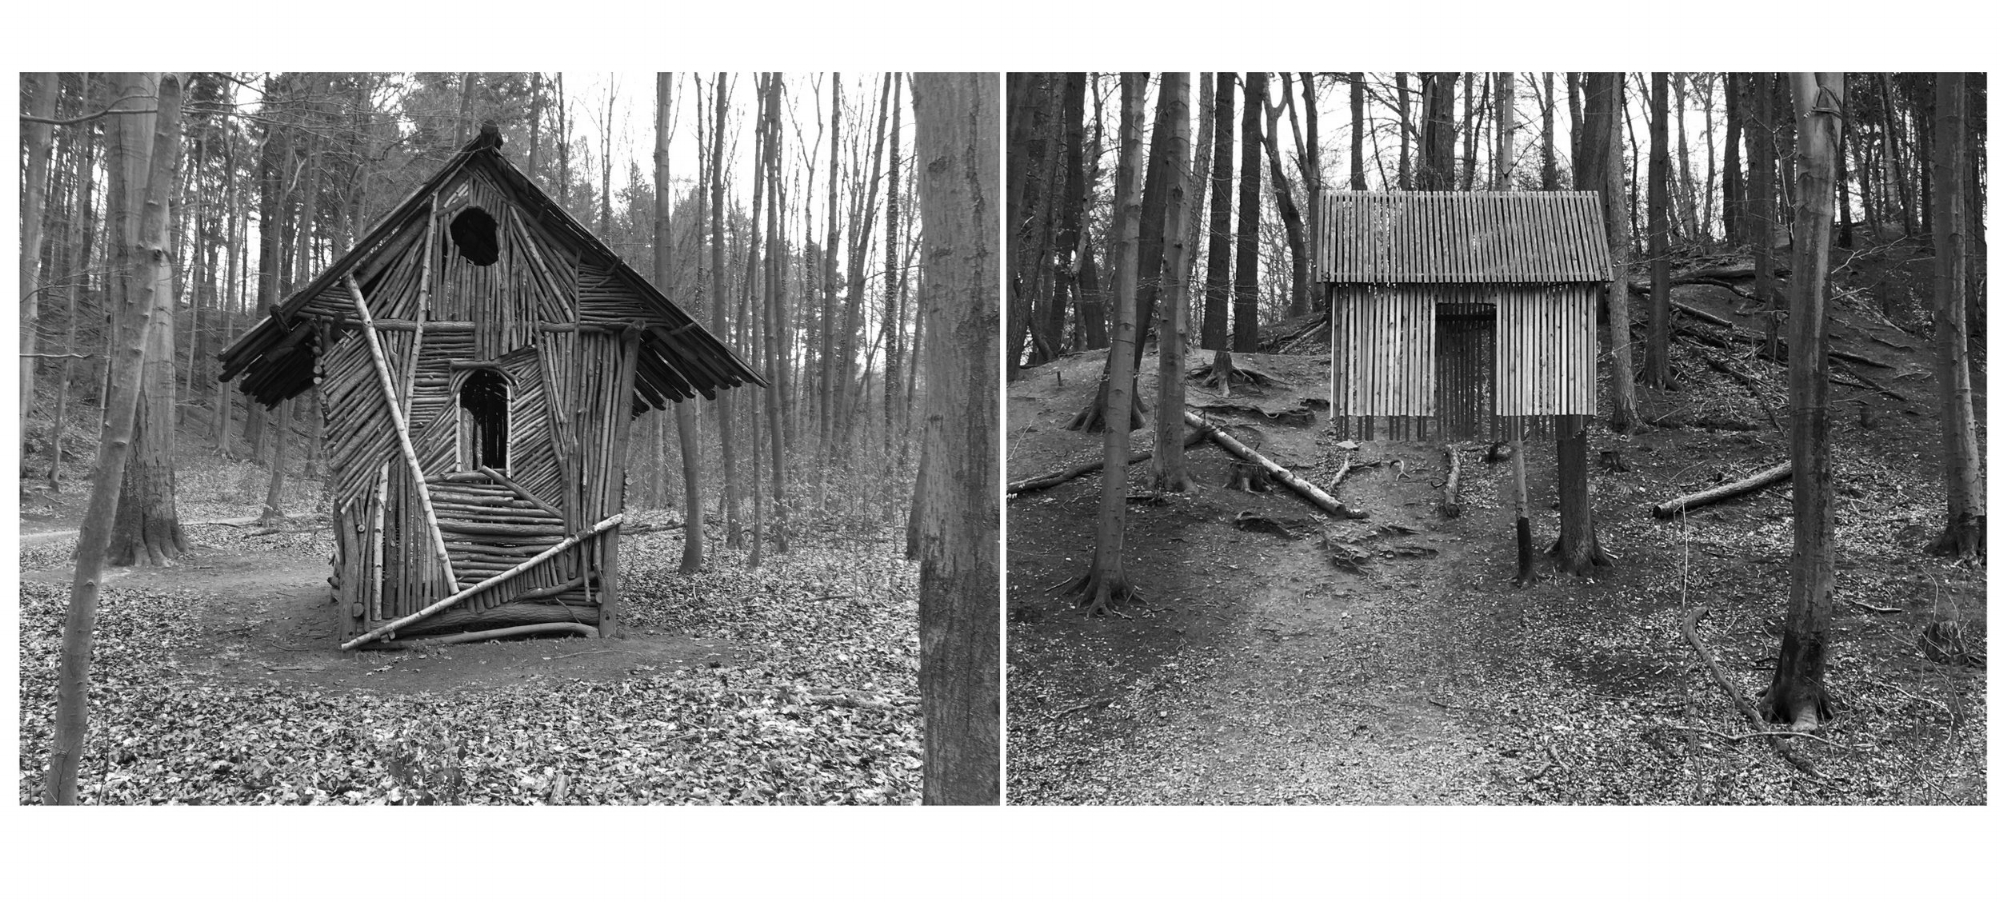 Kunstwald Projects (The Hessian Forest)